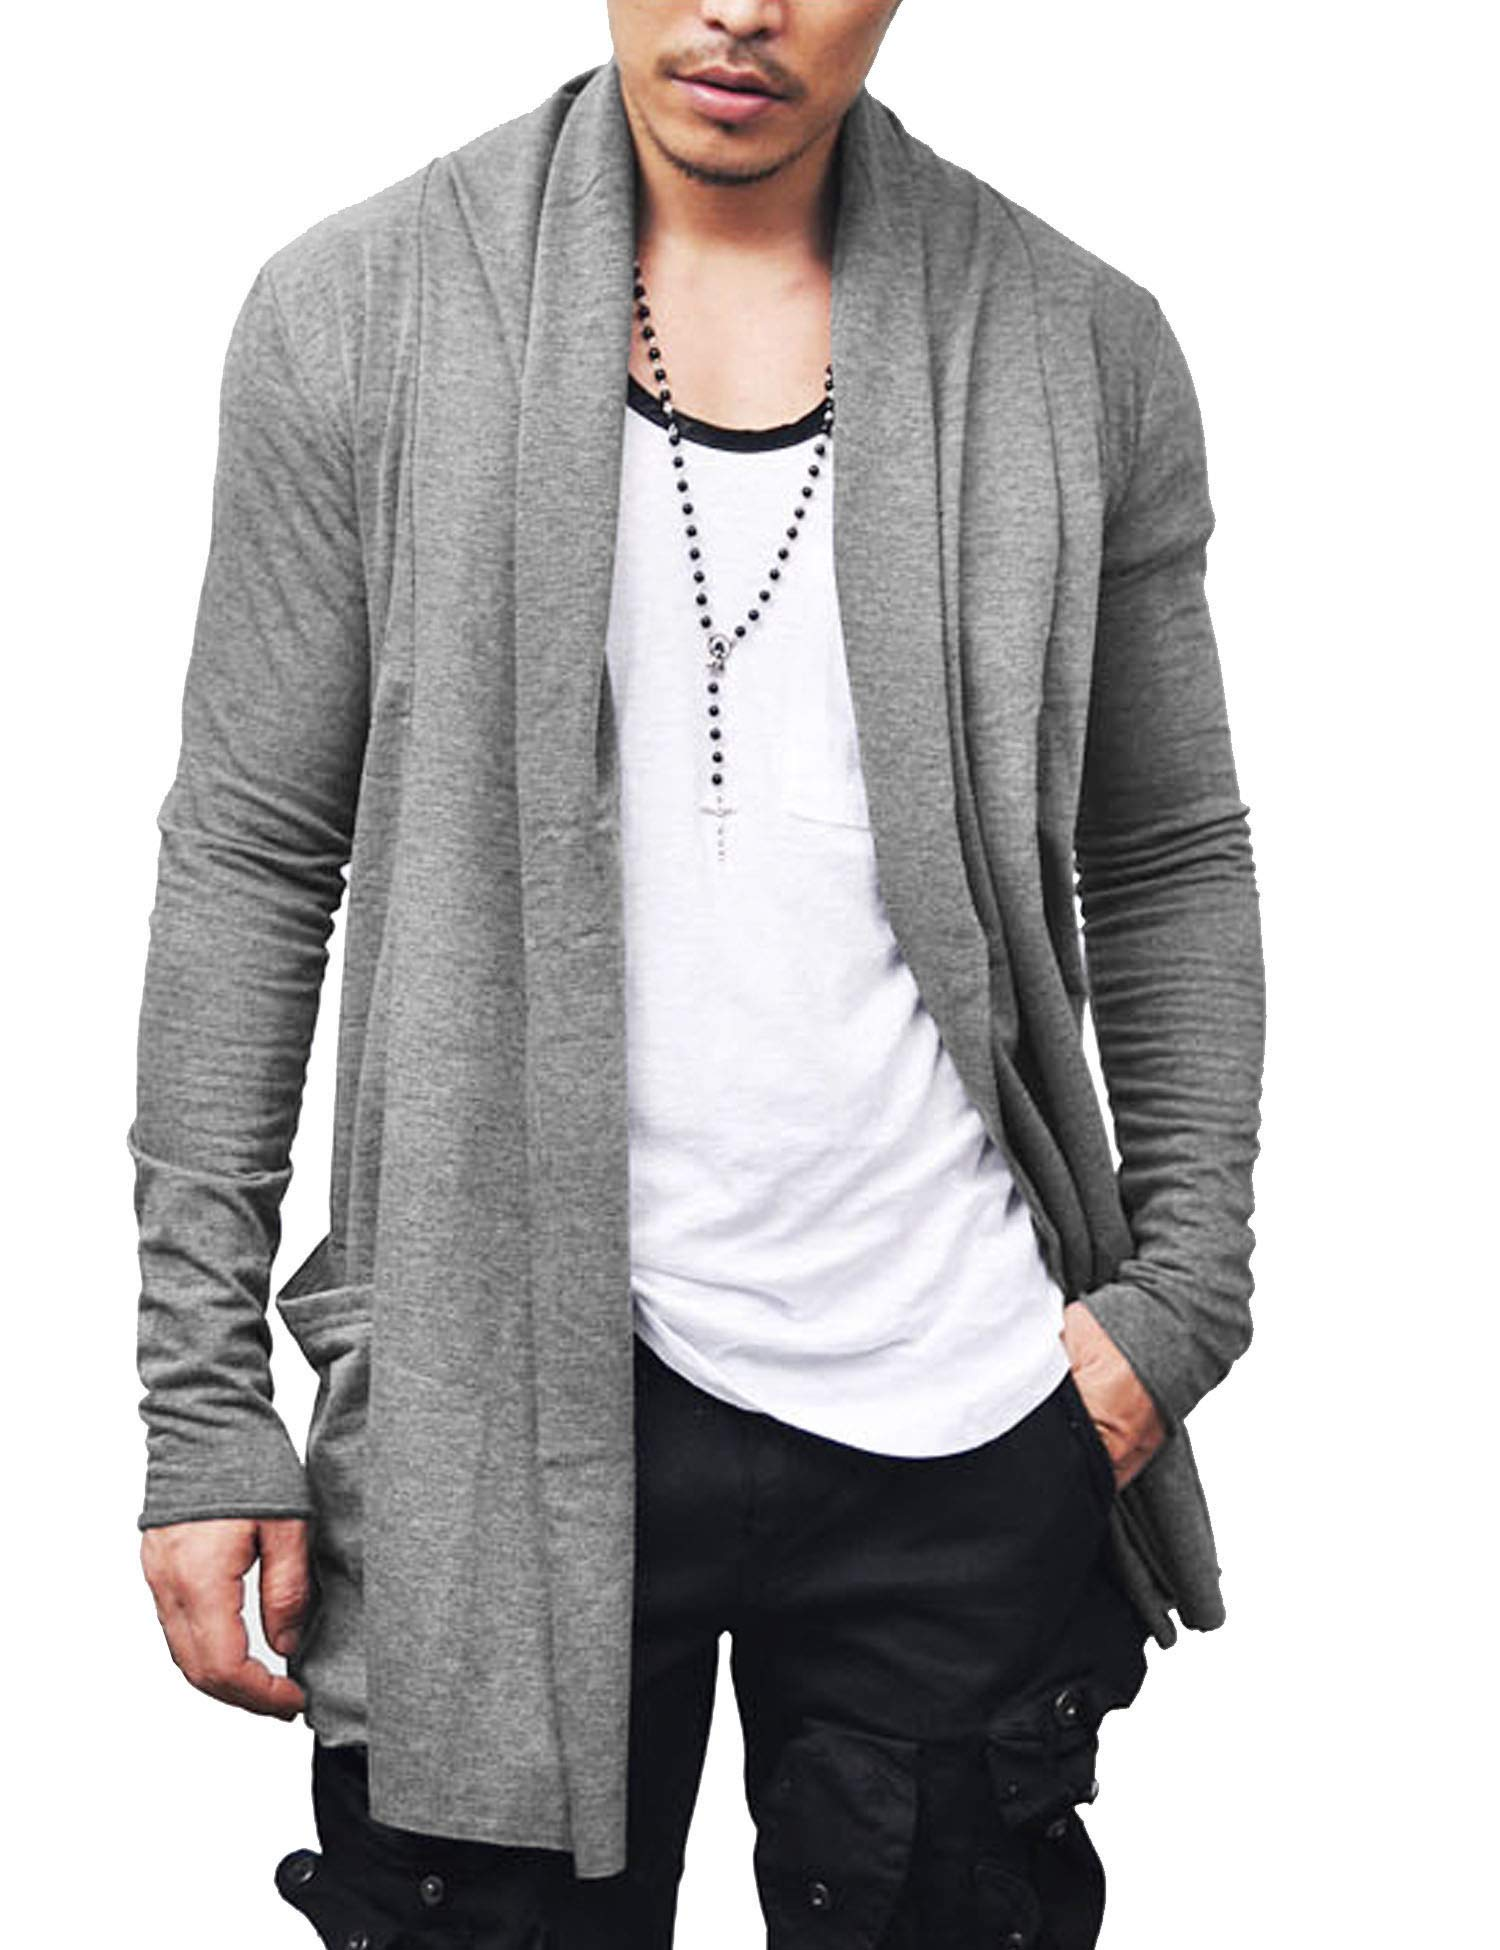 COOFANDY Men's Ruffle Shawl Collar Long Sleeves Cardigan (Large, Grey)